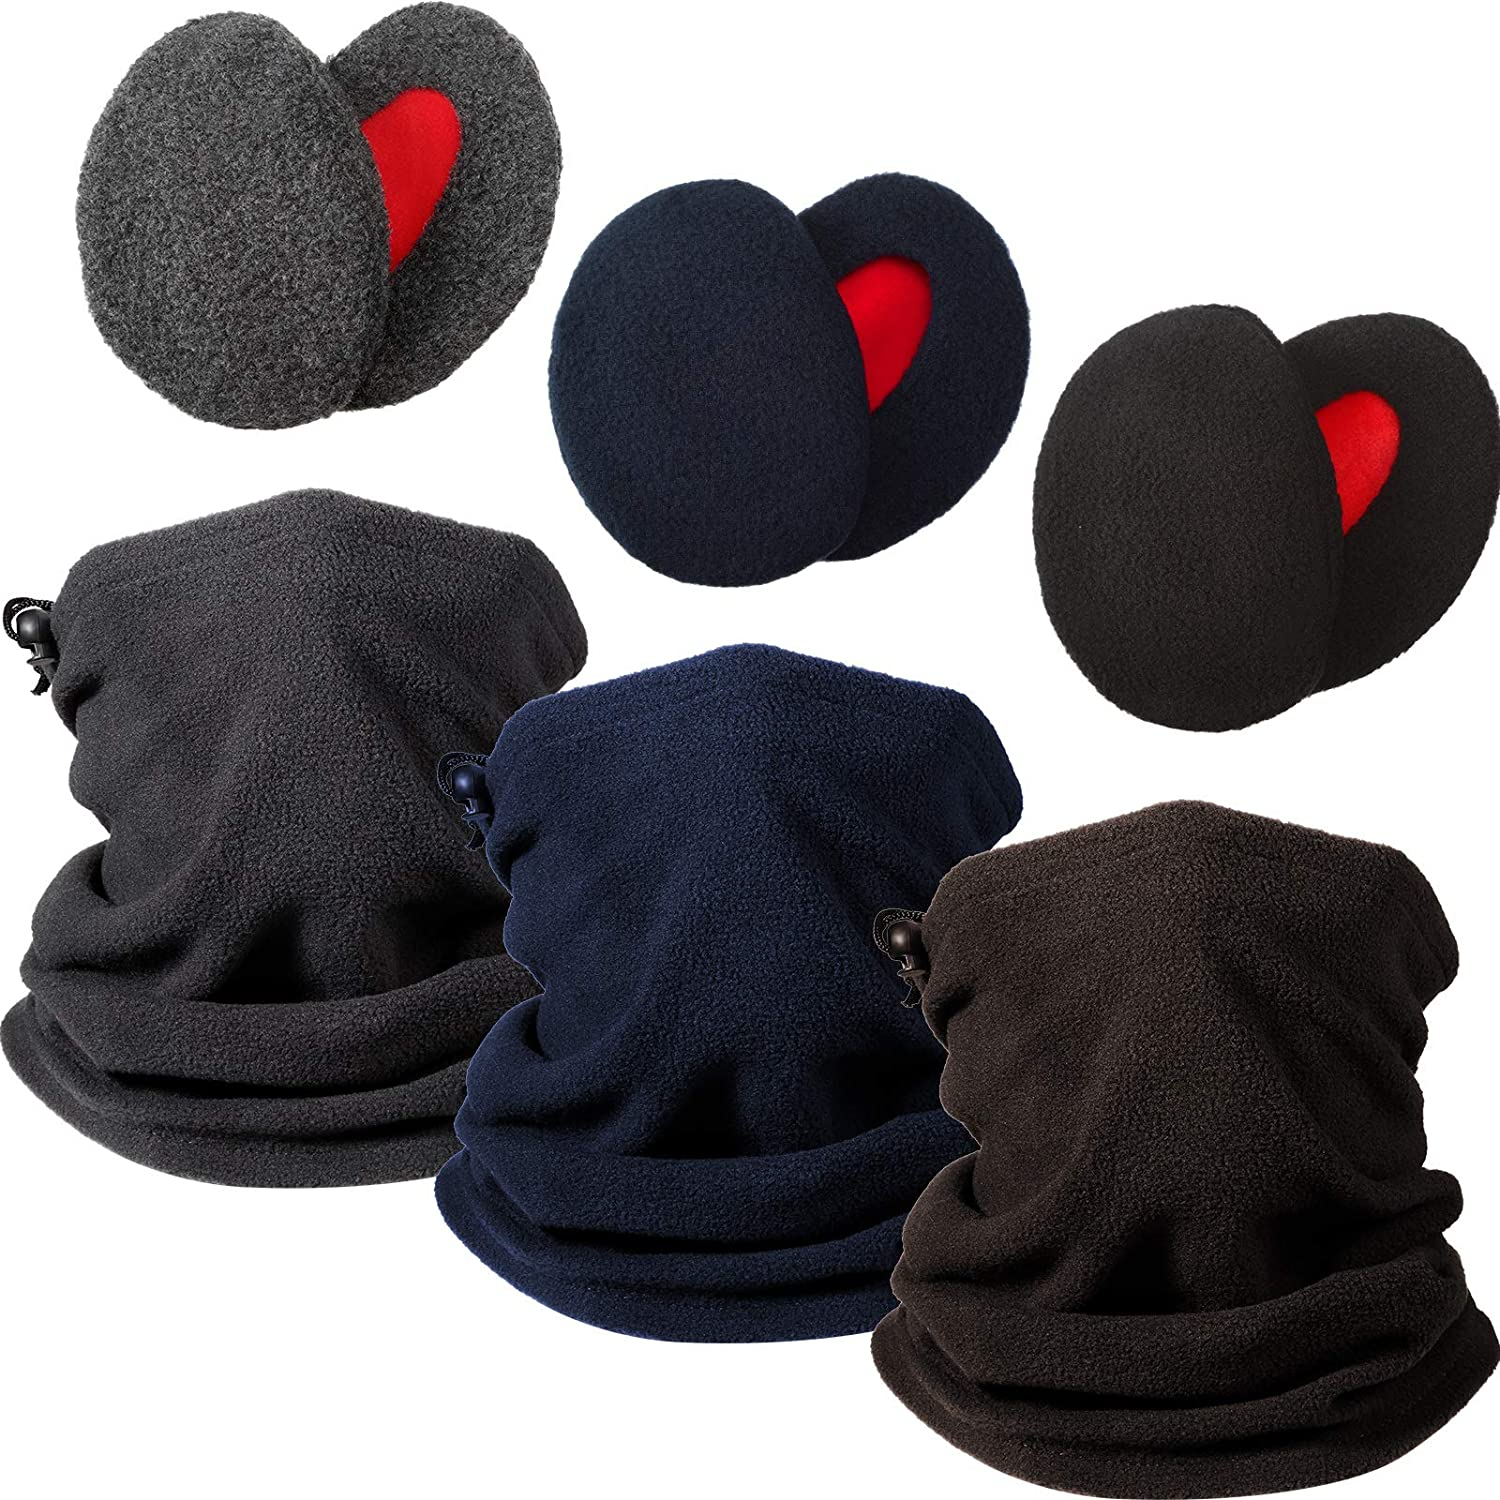 9 Pieces Bandless Ear Warmers Neck Gaiter Includes 3 Pairs Winter Ear Covers Earmuffs and 3 Pieces Fleece Neck Warmer for Men Women Winter